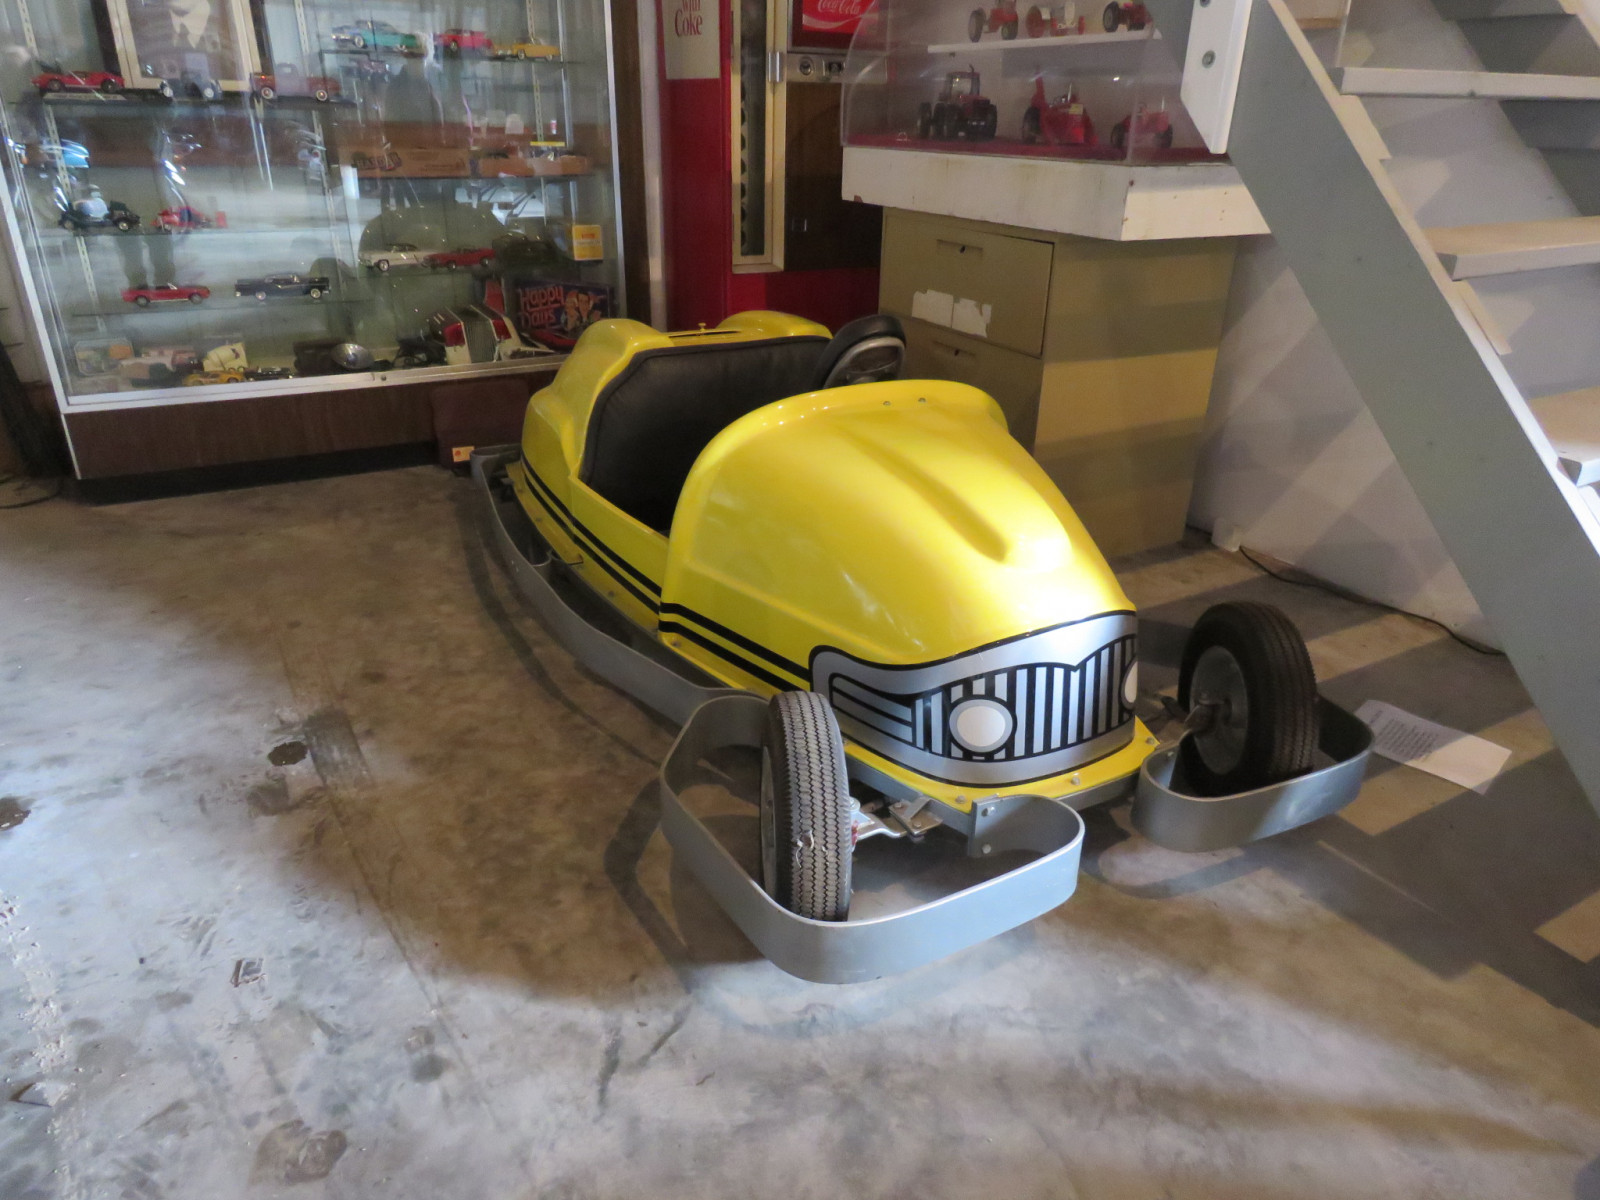 Motorized Bumper Car - Image 1